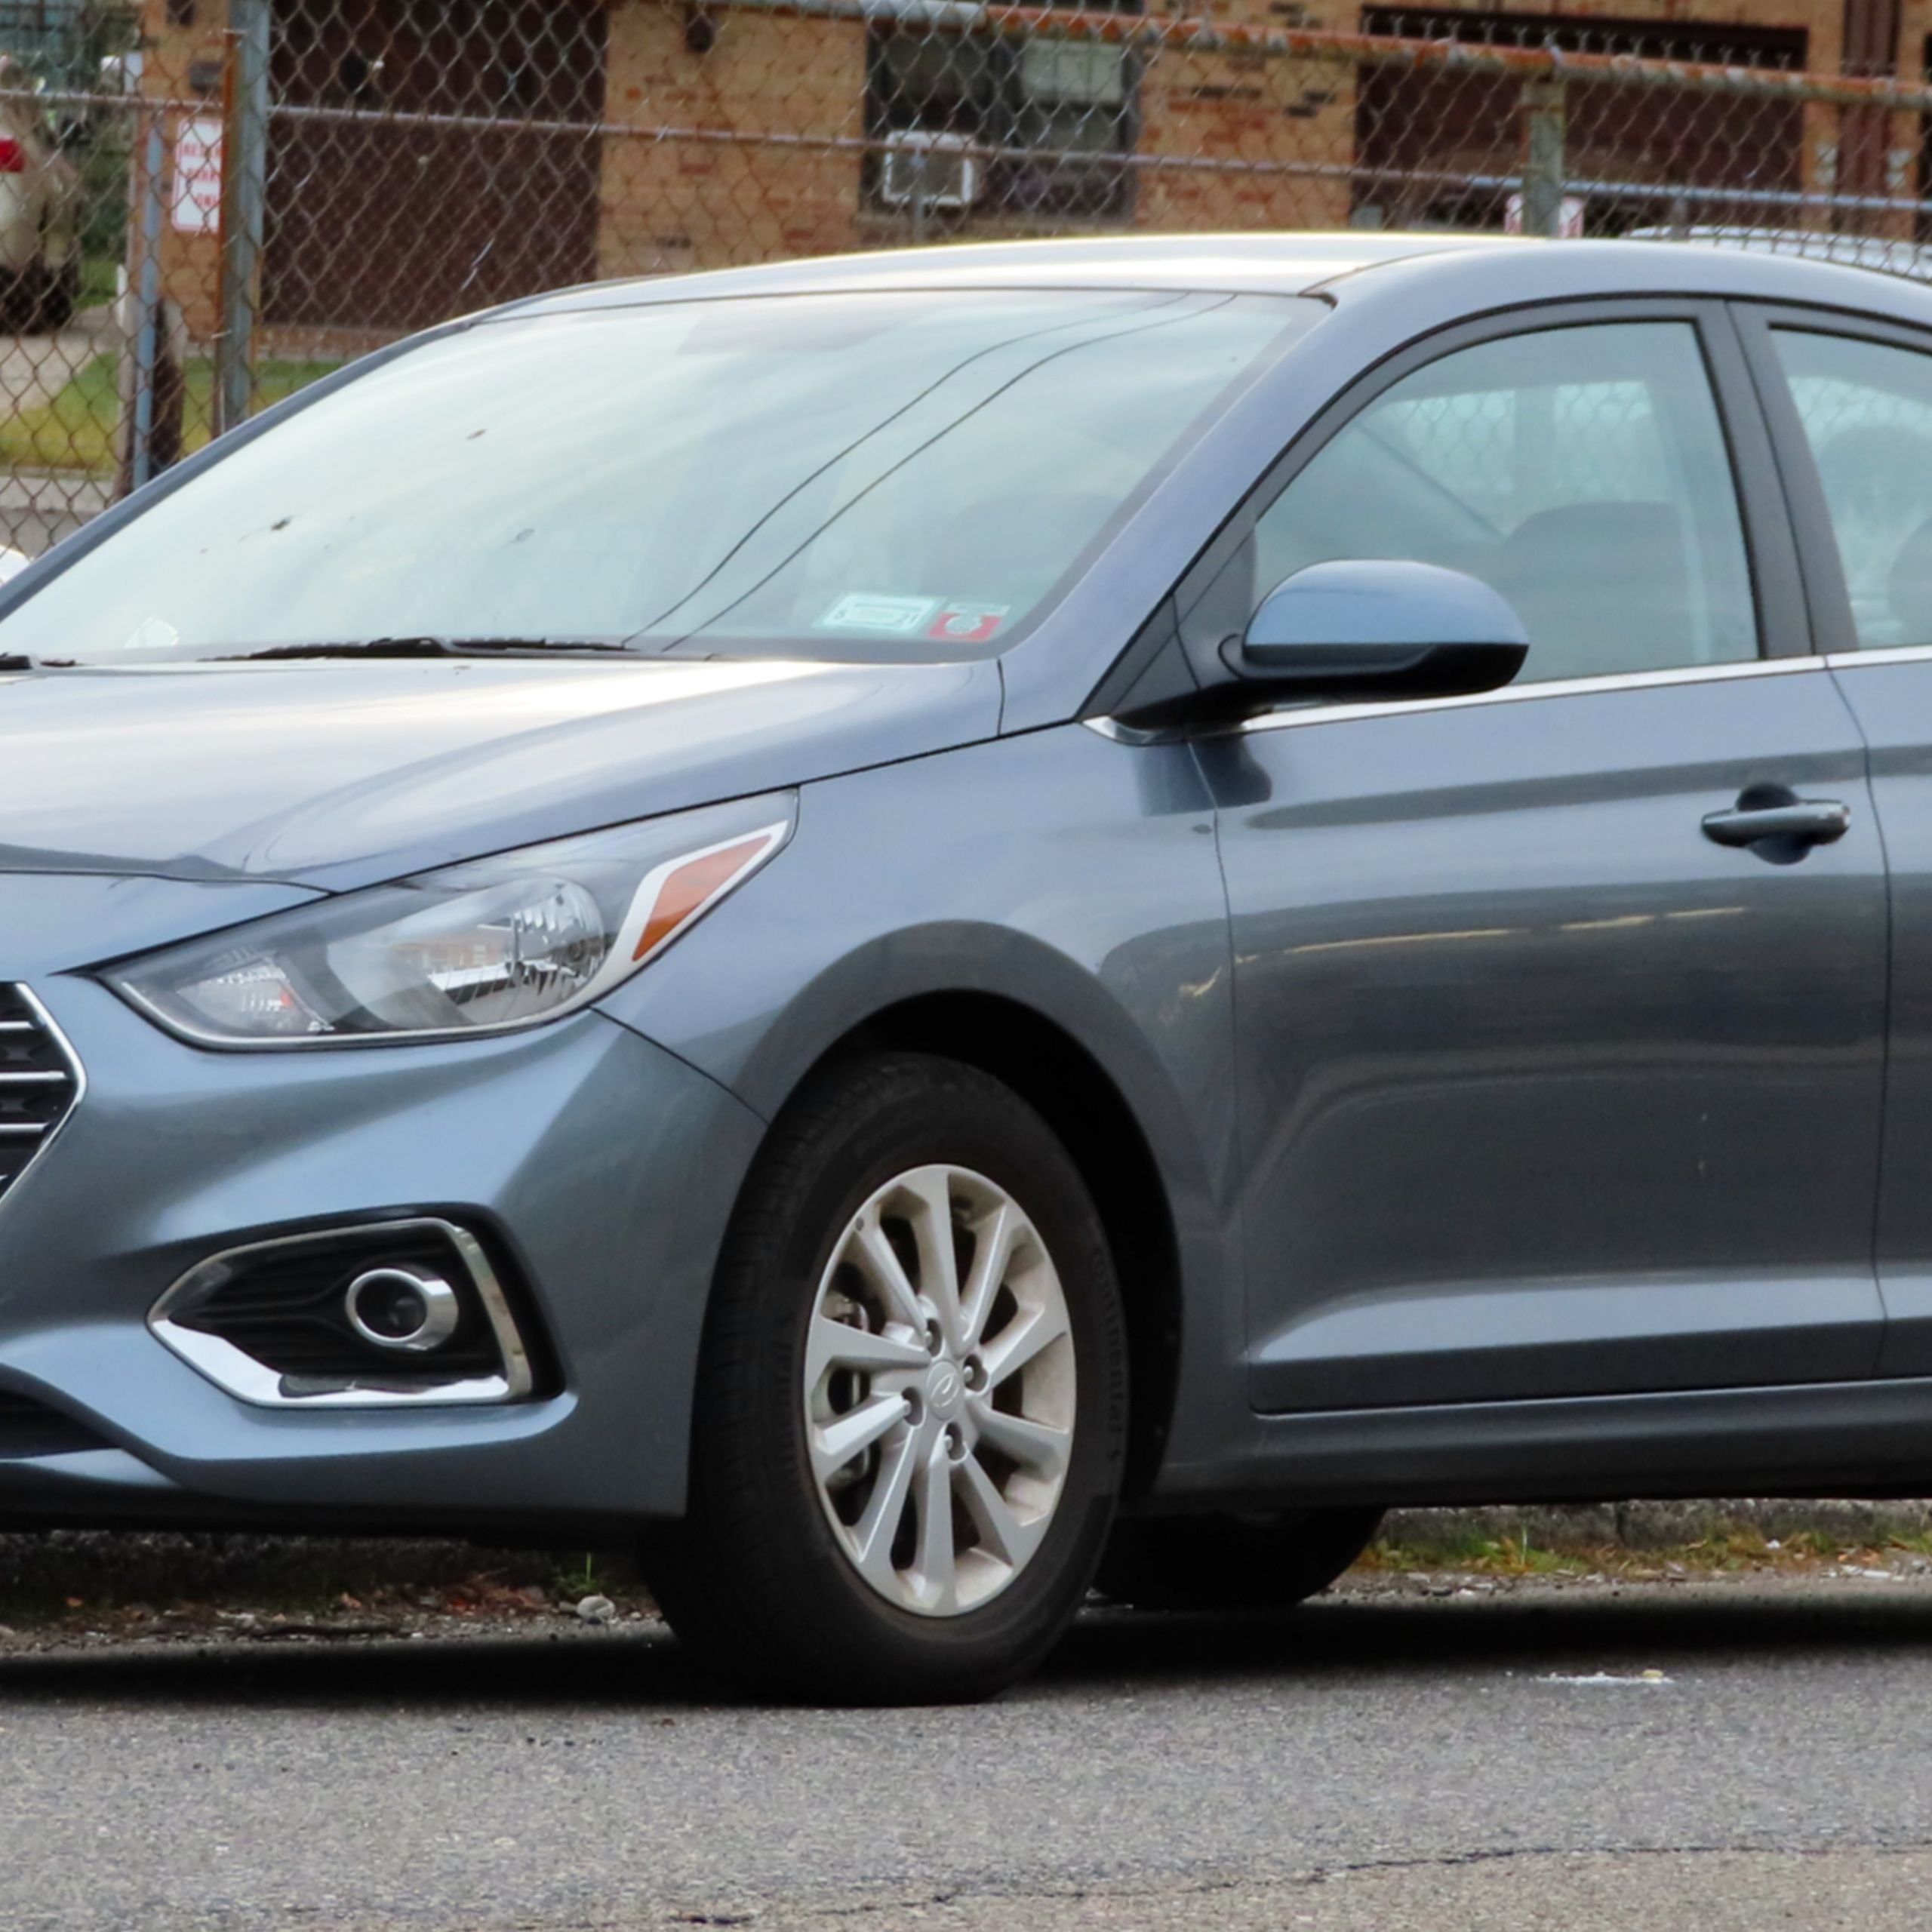 2019 Hyundai Accent 1 6L front 10 8 19